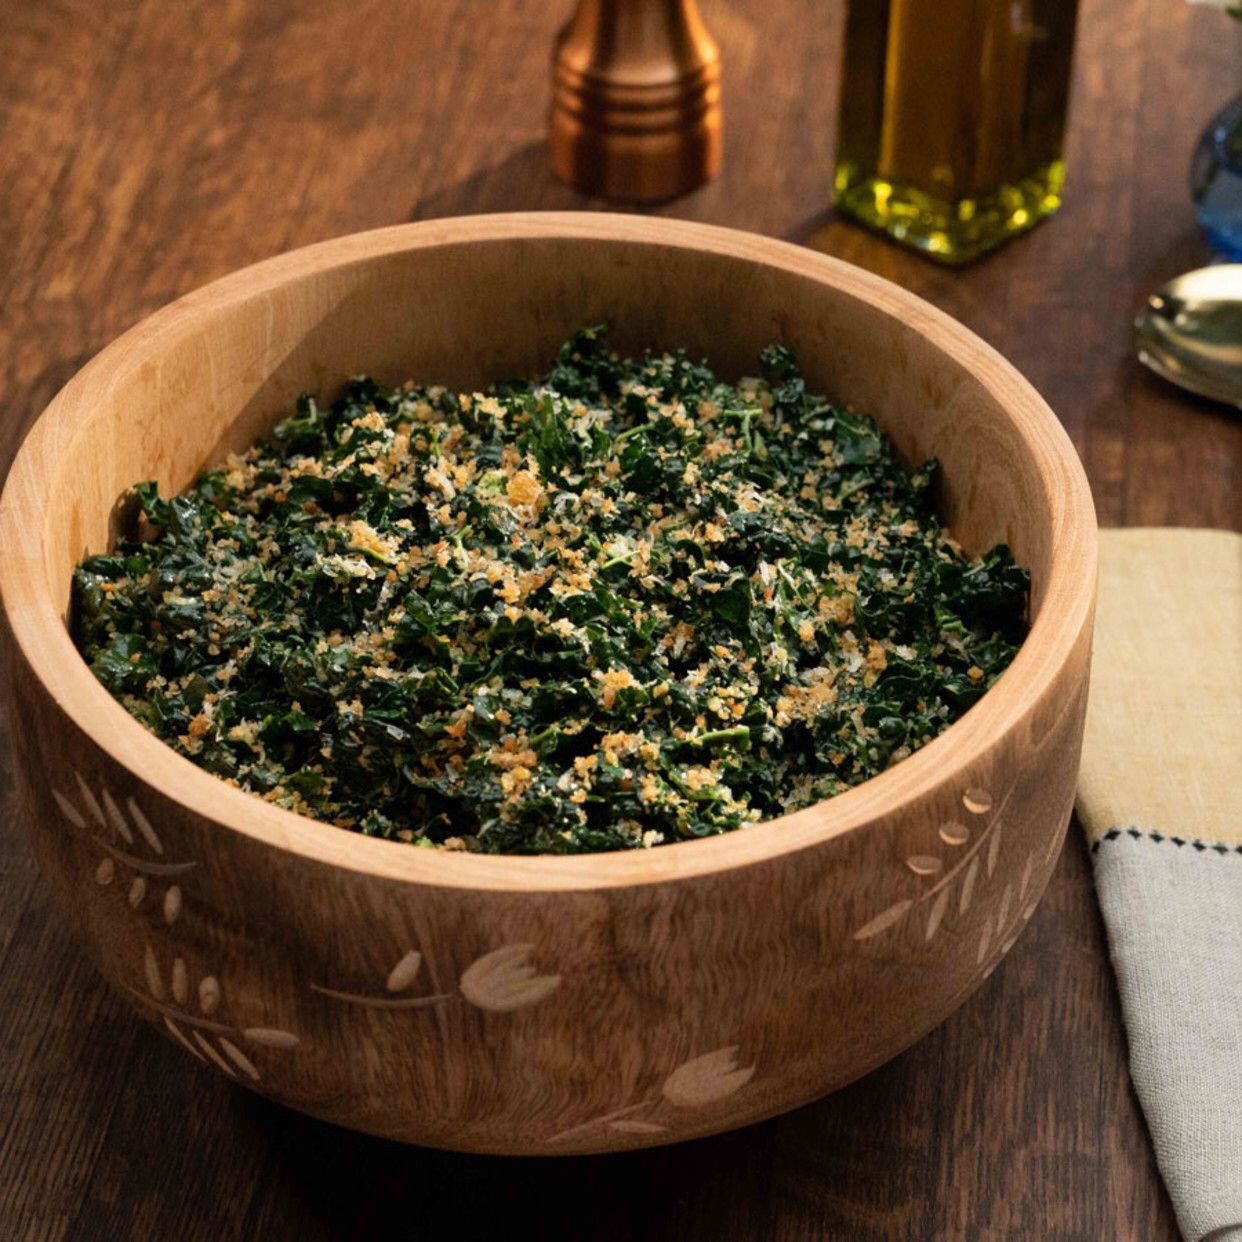 Kale Caesar With Garlicky Panko Crunch By Valerie Bertinelli In 2020 Kale Valerie S Home Cooking Recipes Crunch Recipe